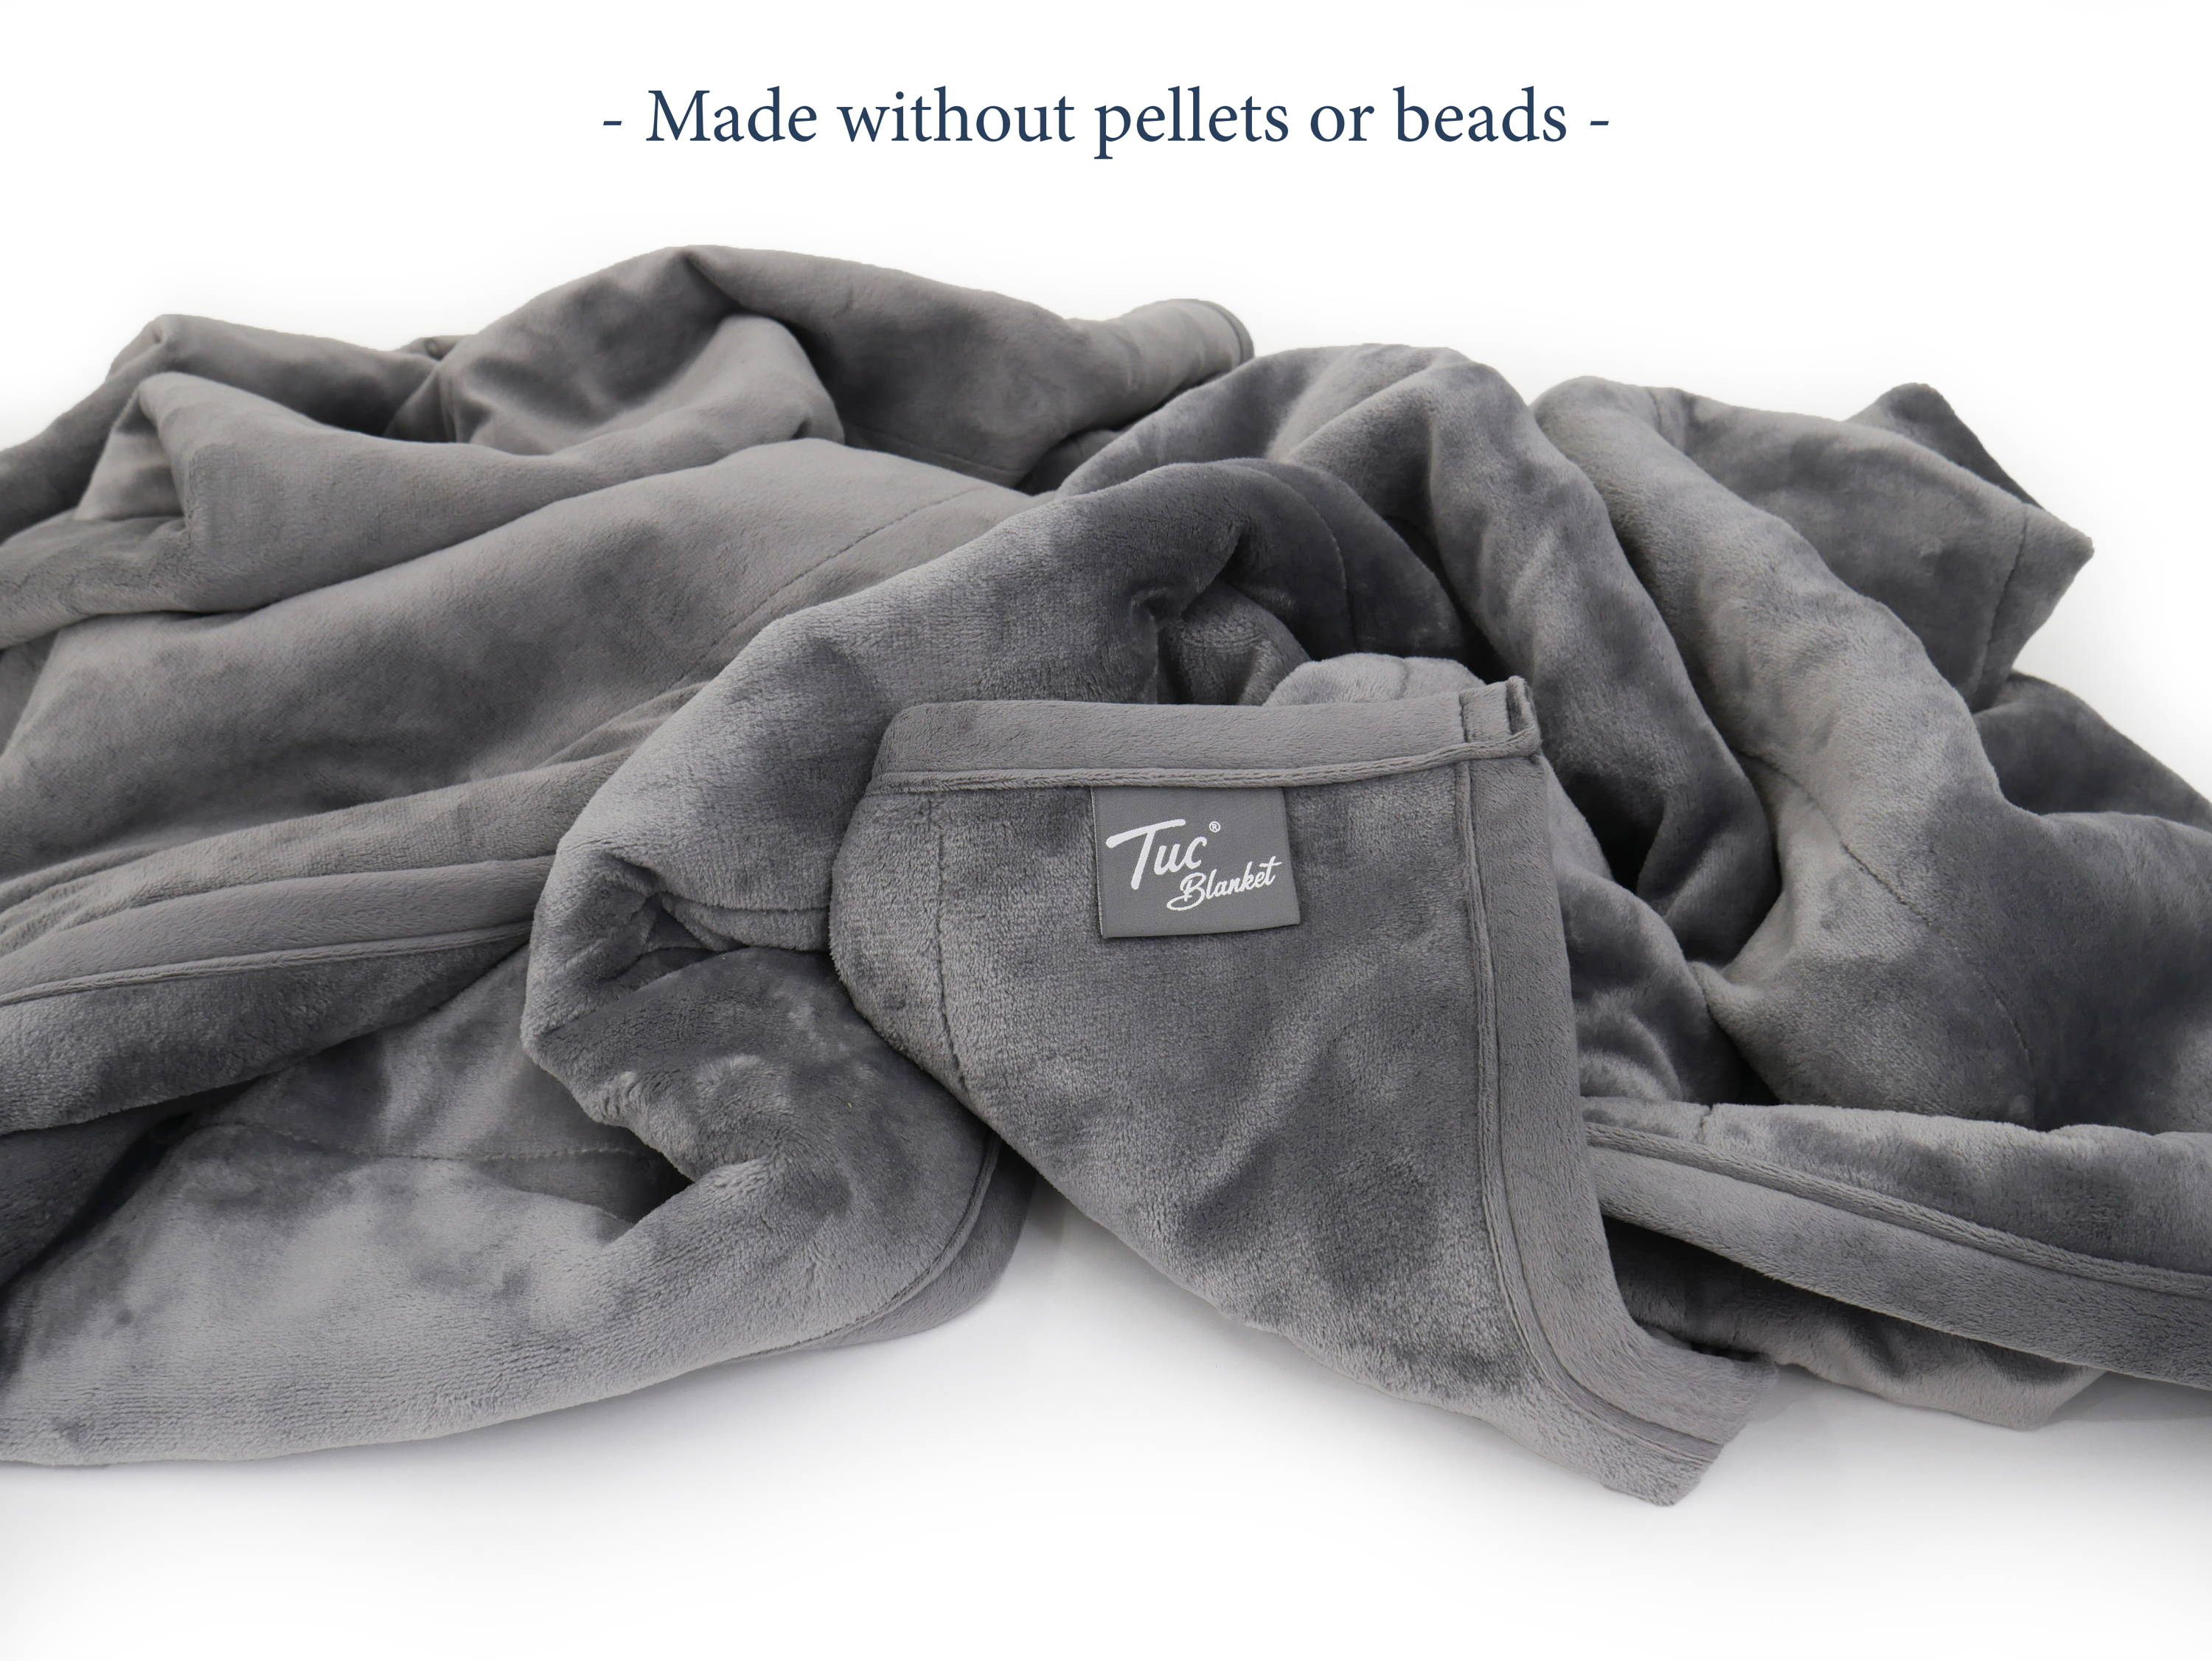 Flexible, washable, Tuc Weighted Blanket made without beads